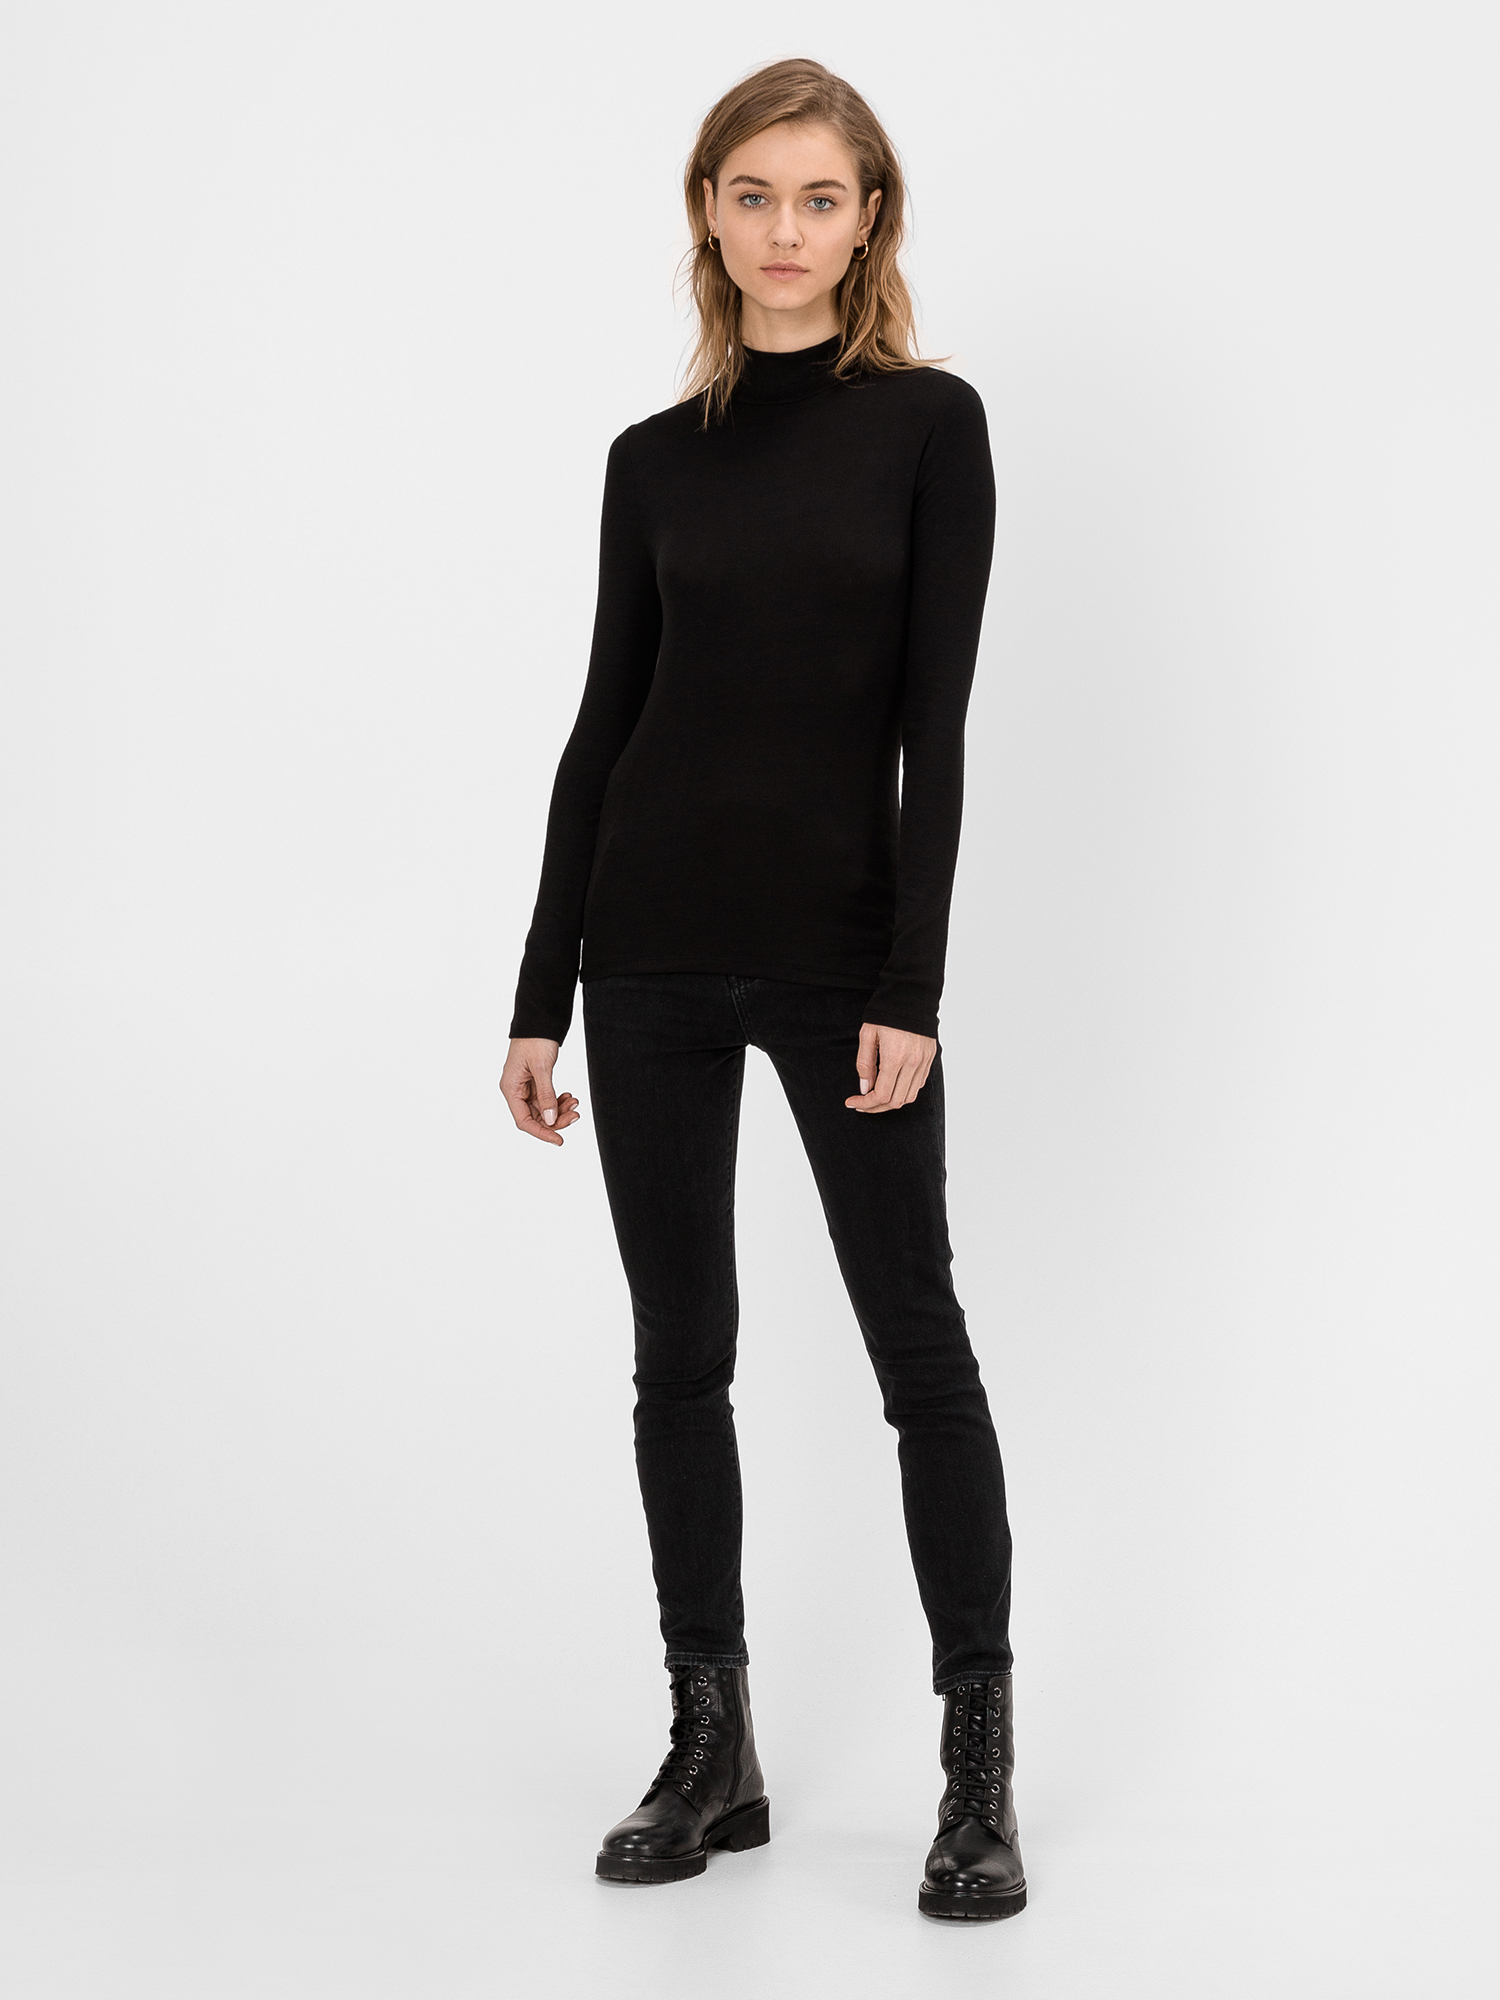 Džínsy high rise true skinny with secret smoothing pockets (1)